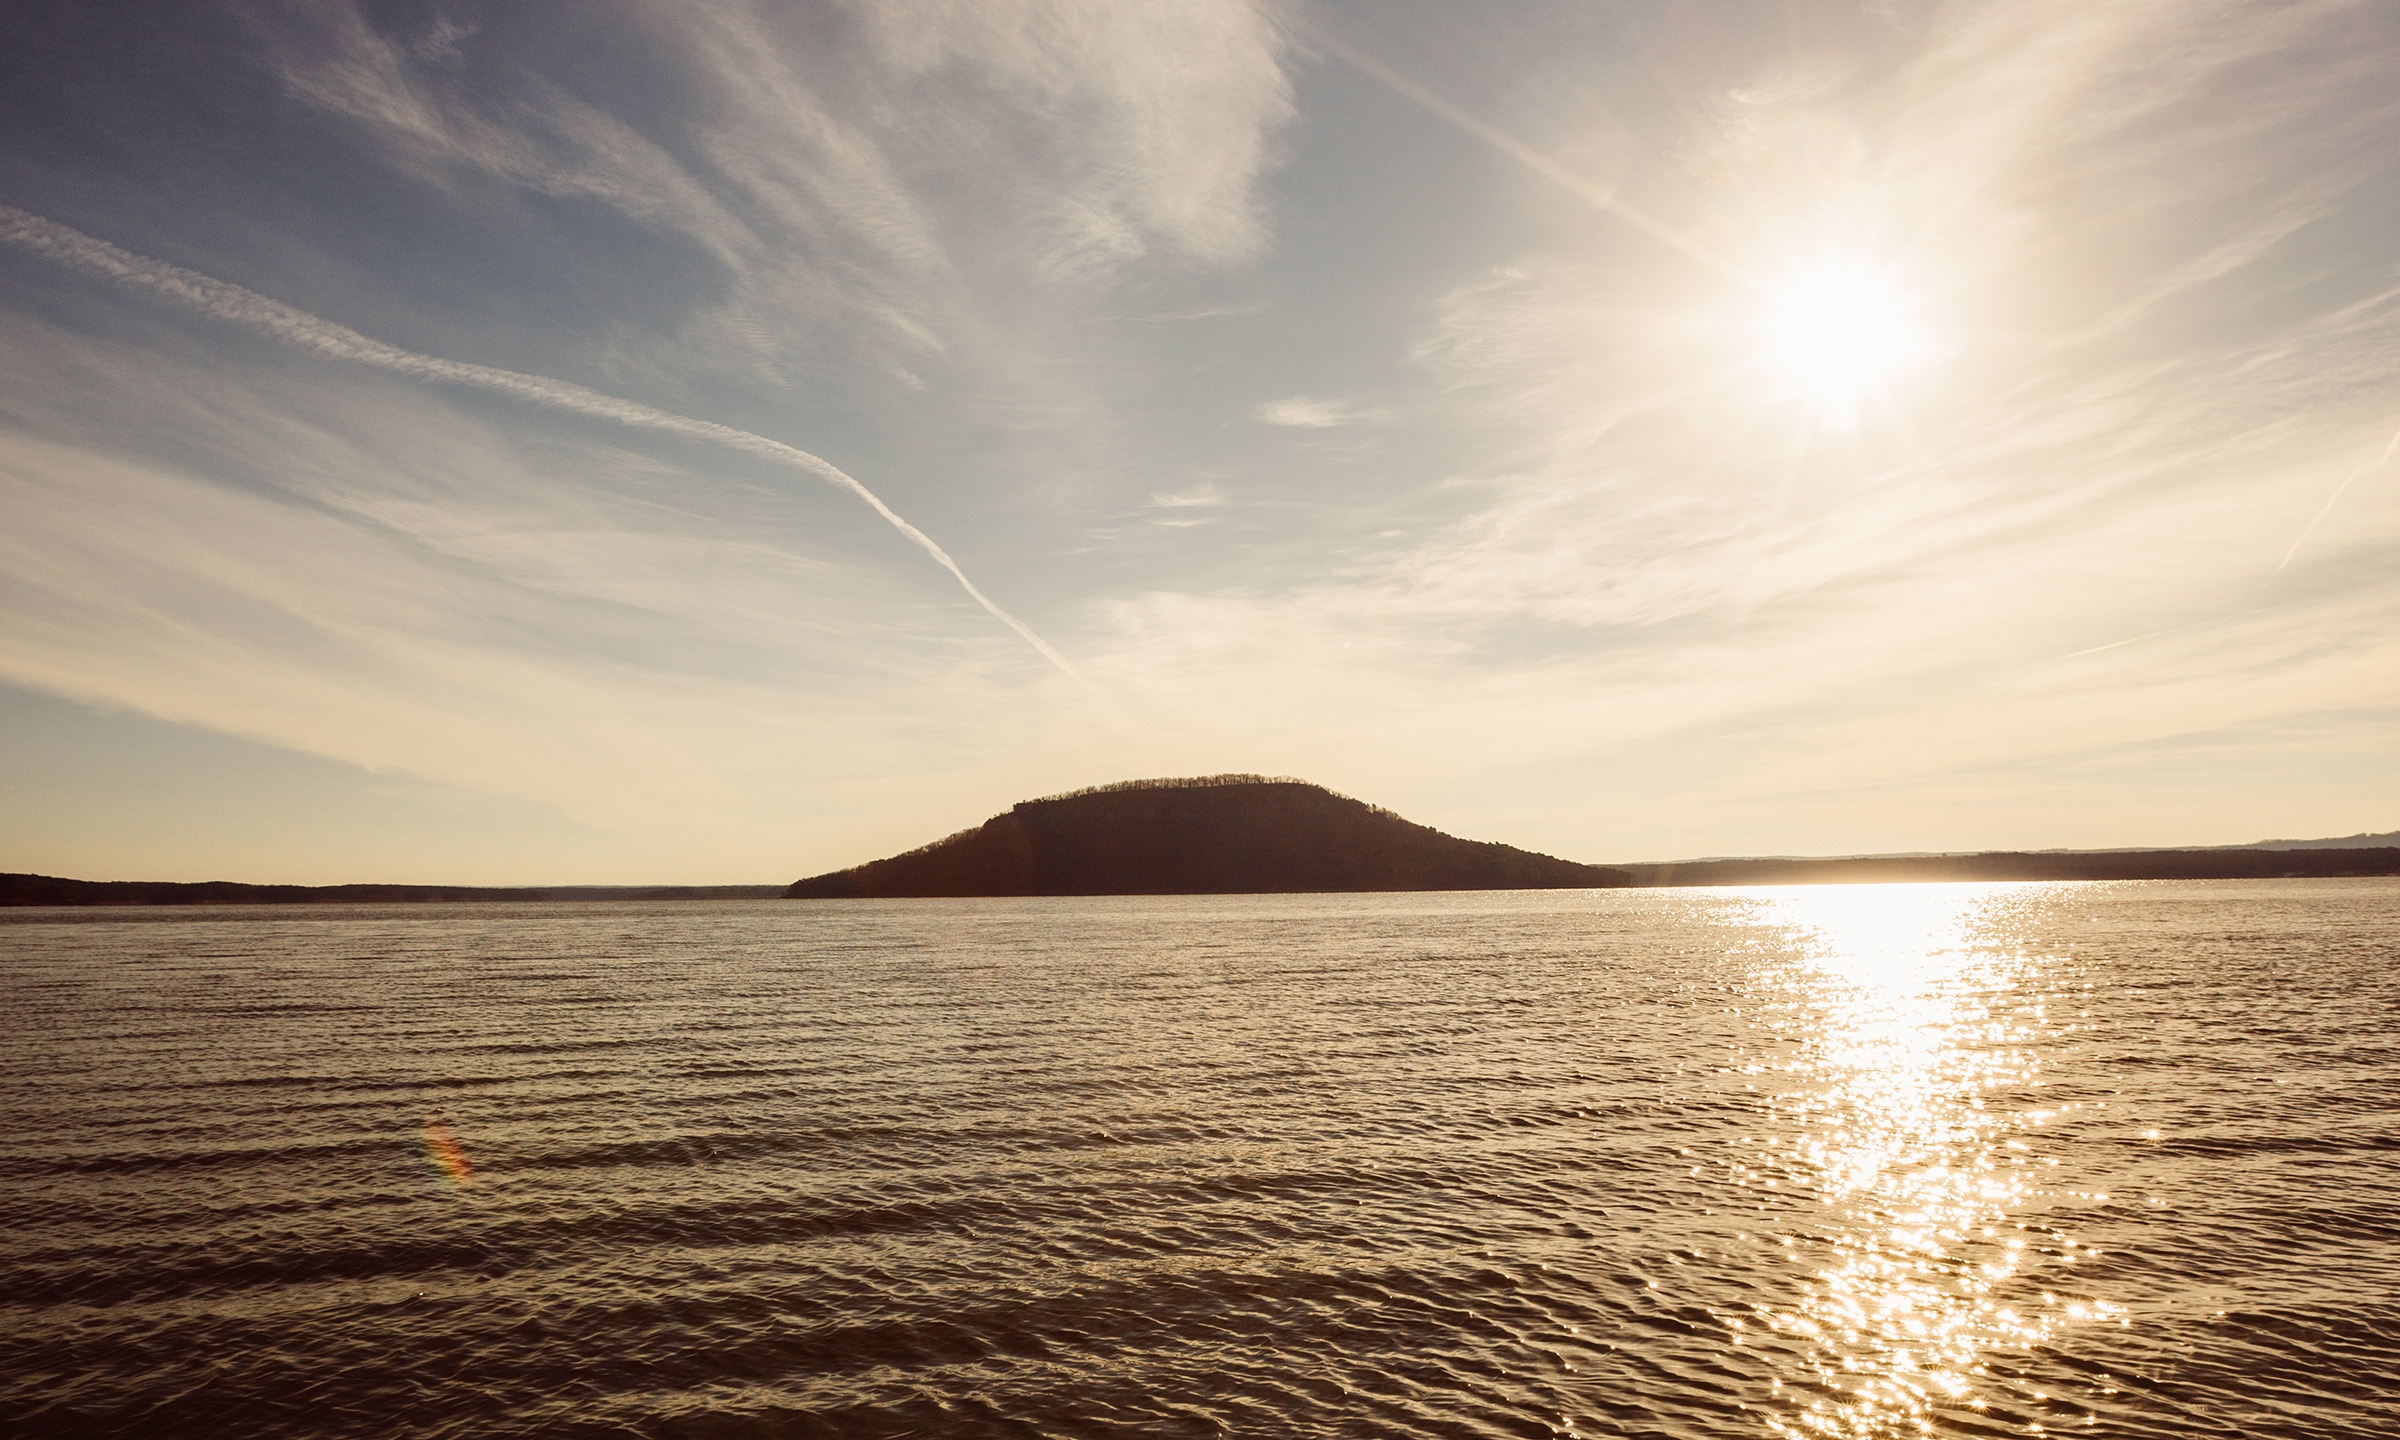 Majestic Sugar Loaf Mountain Island dominates the Greer's Ferry Lake horizon in Fairfield Bay.